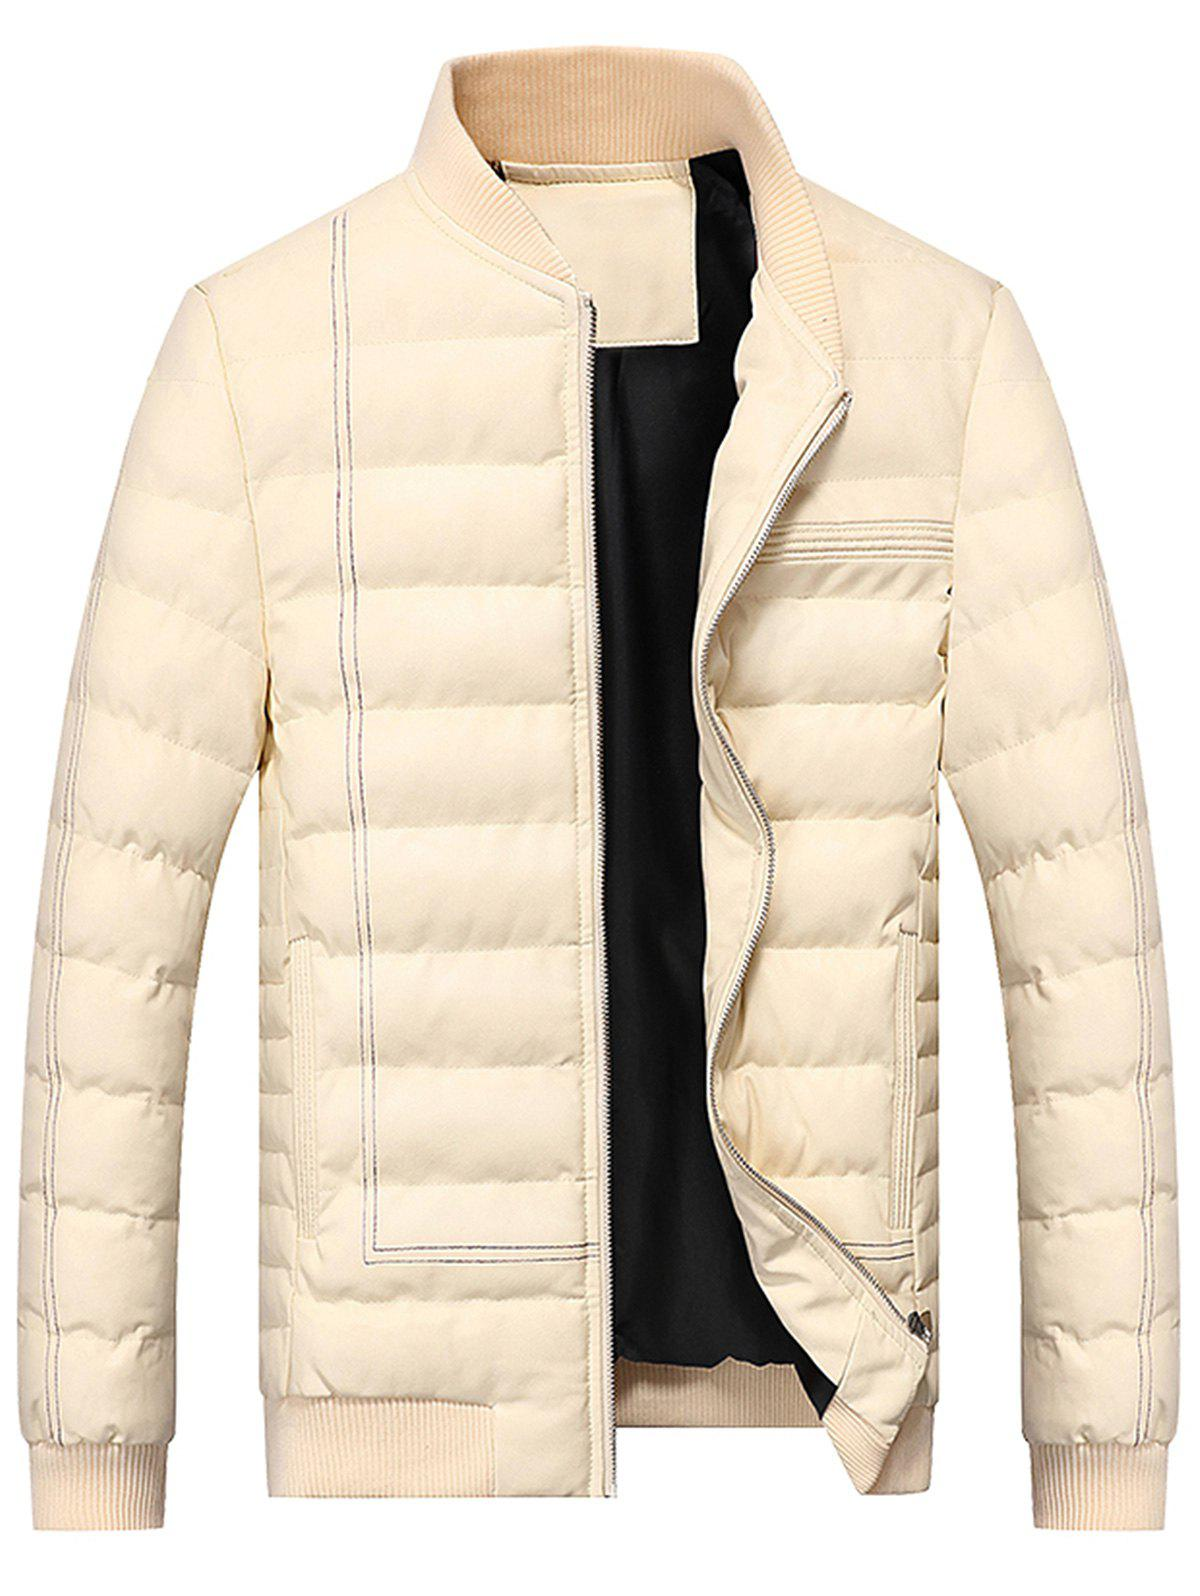 Zip Up Suture PU Leather Padded Jacket - OFF WHITE XL